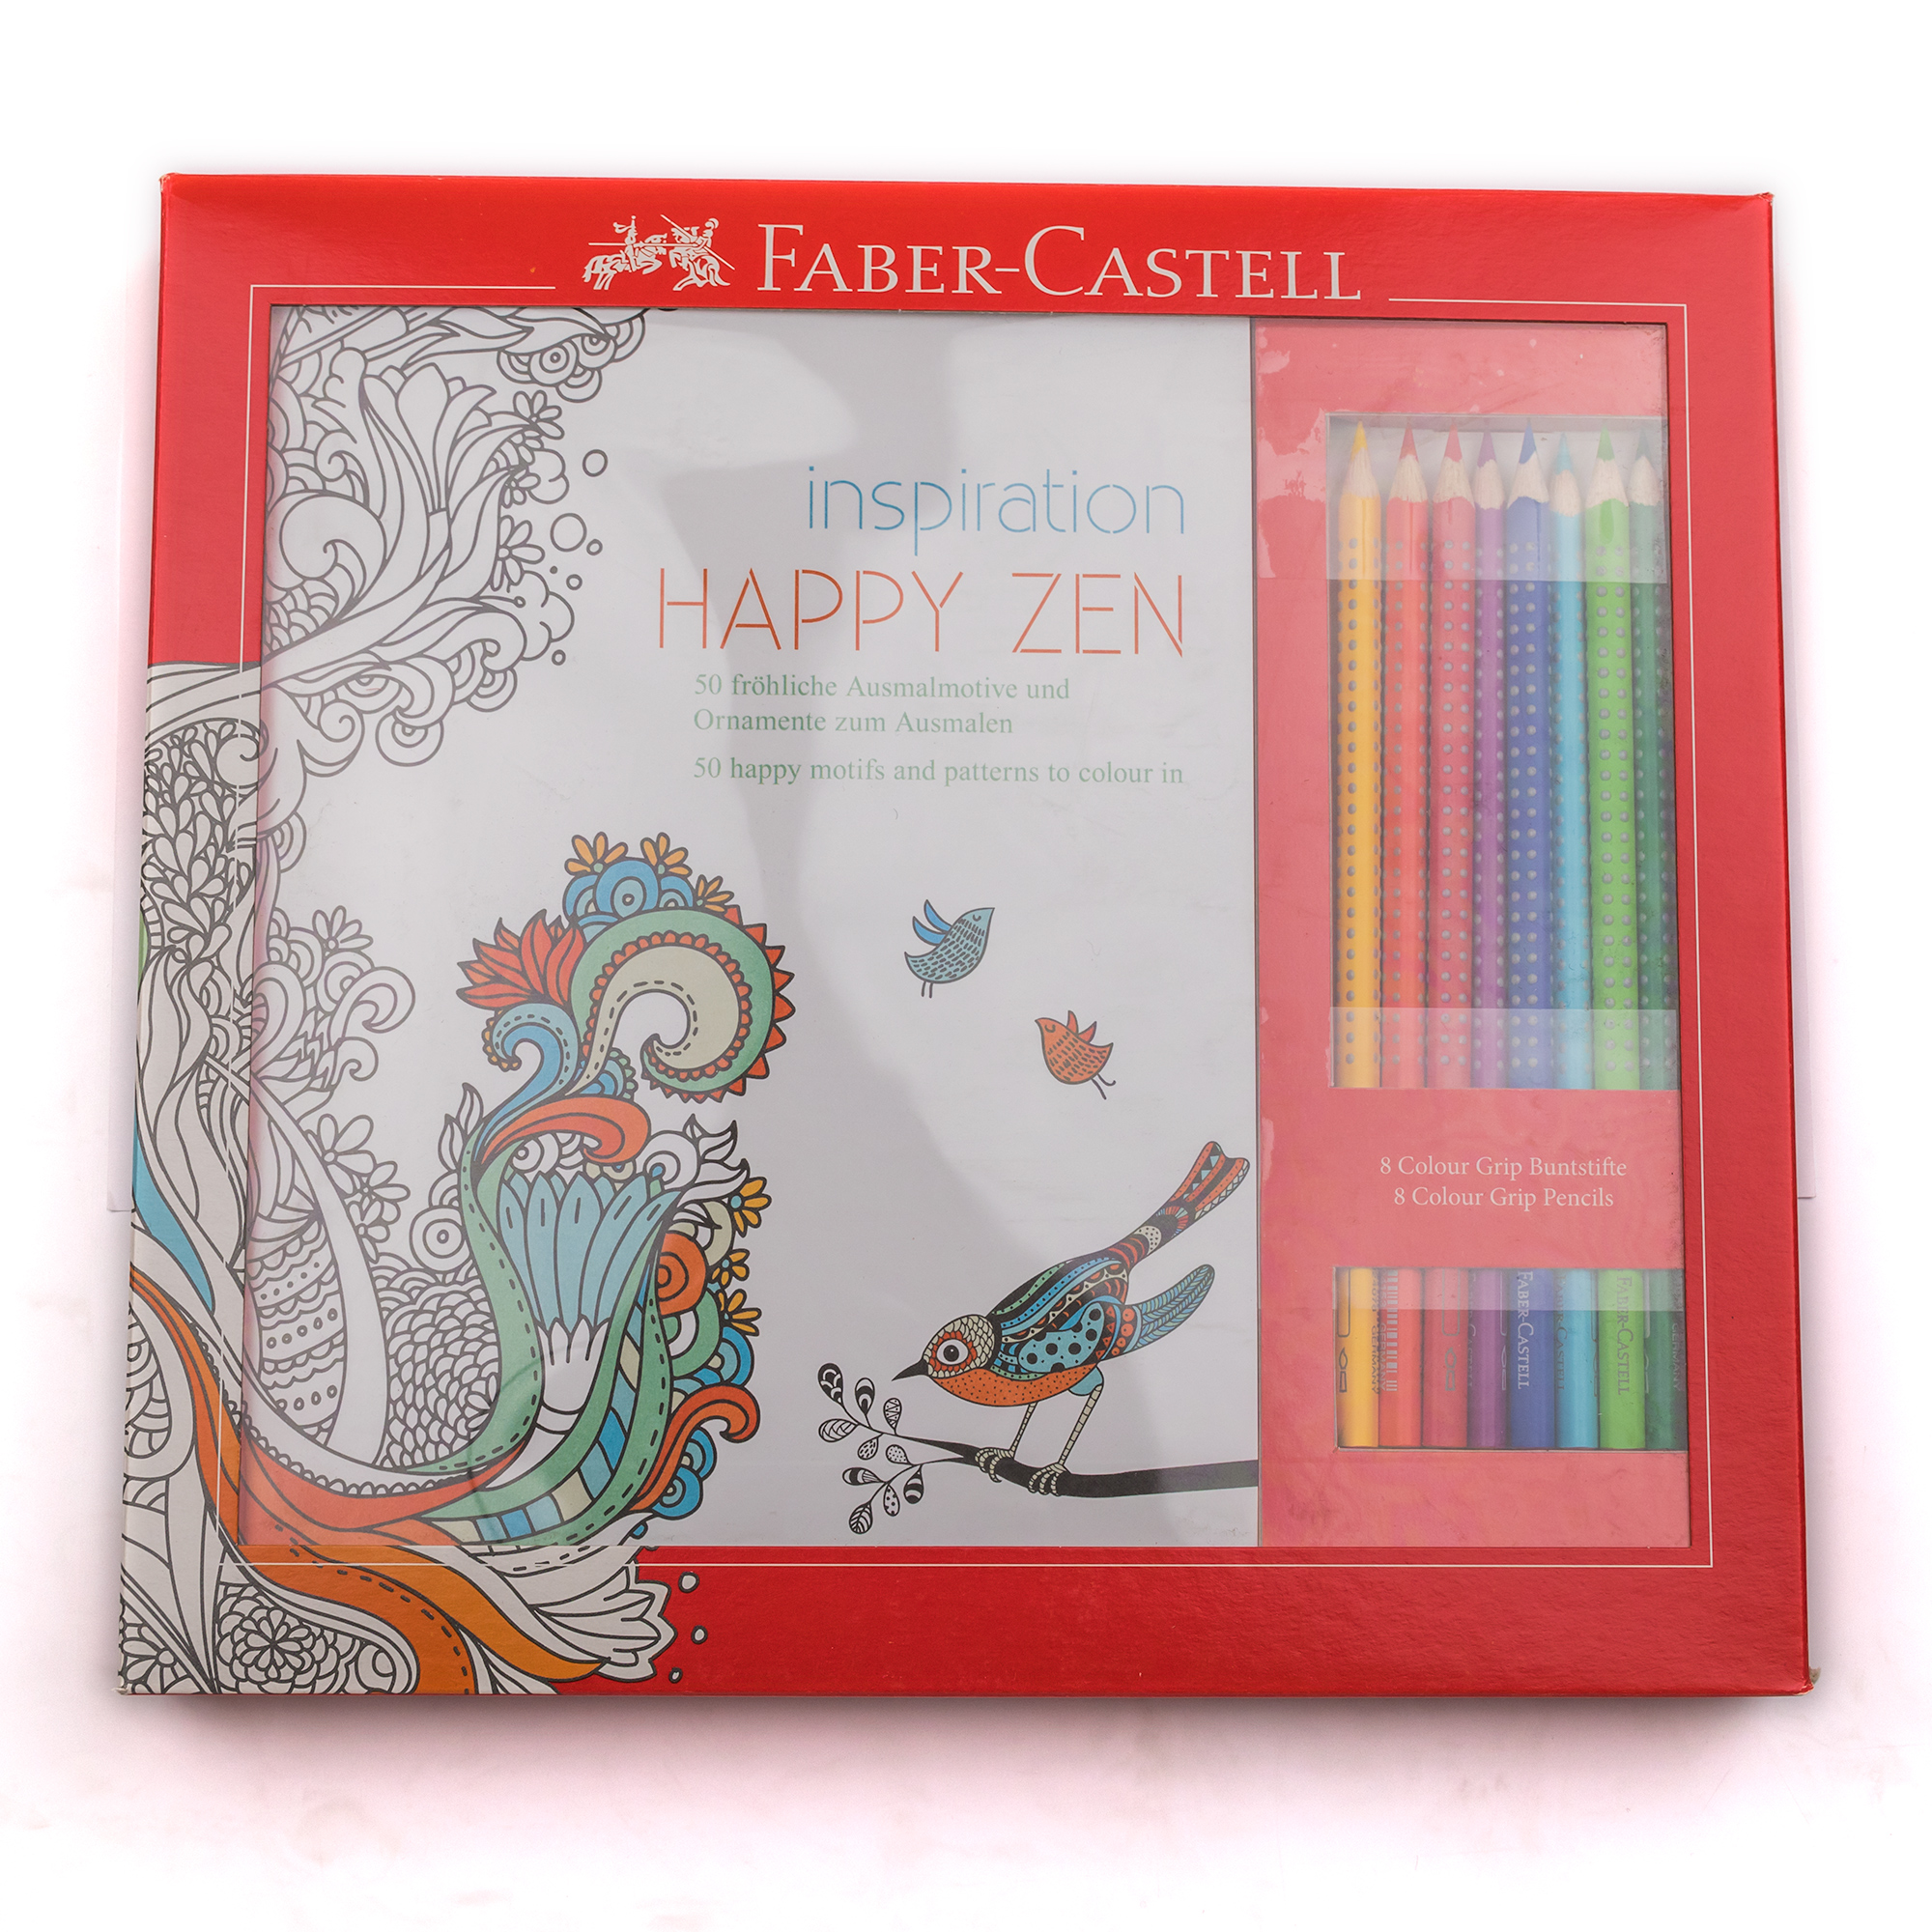 Faber-Castell Inspiration Happy Zen Set Coloring Book and 8 pencils for Adults